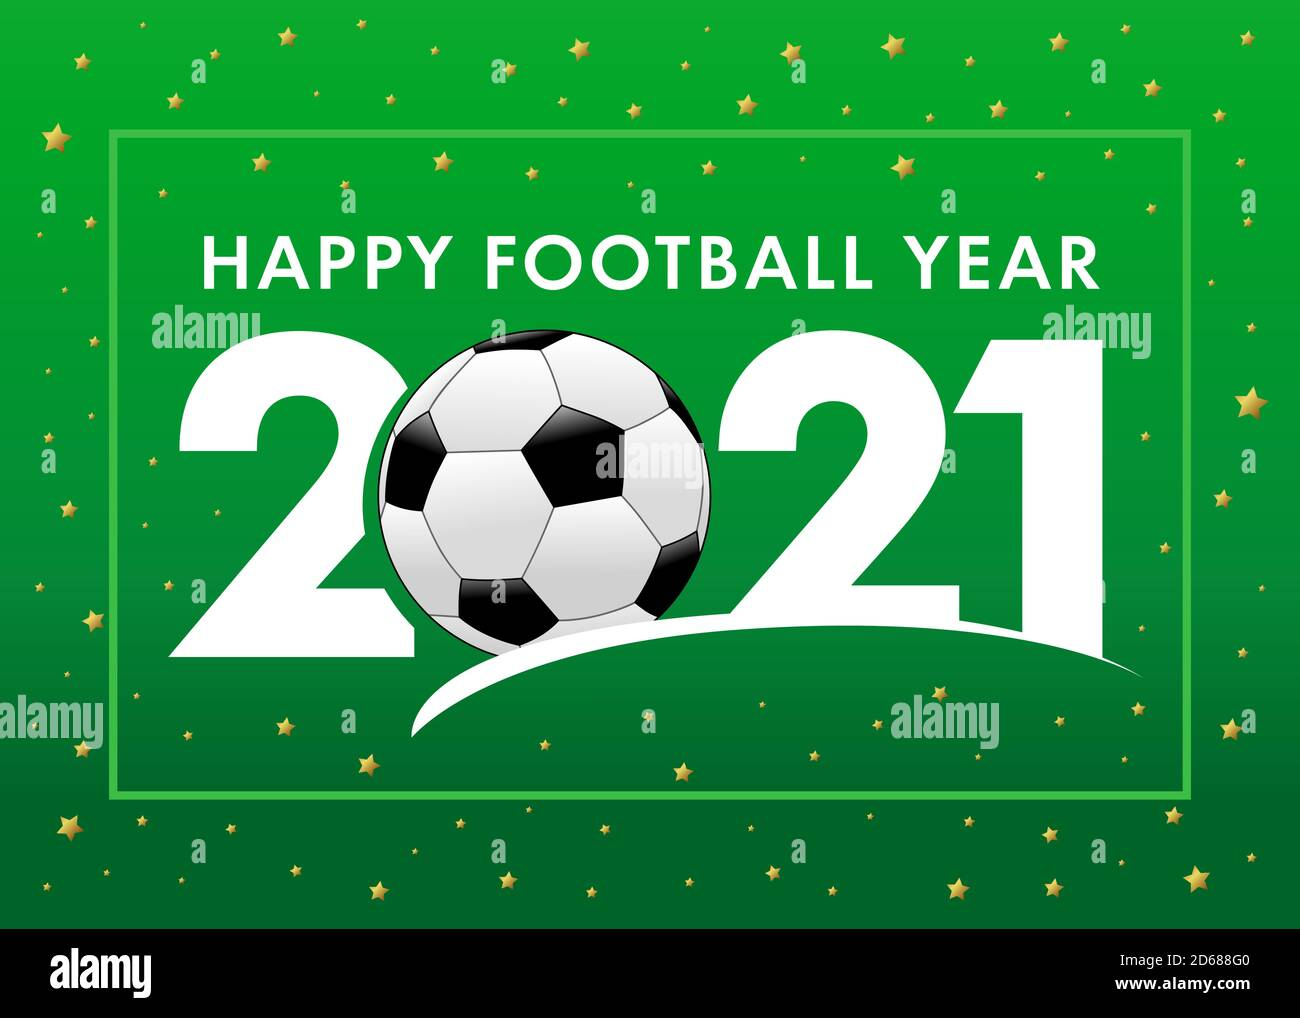 Football, Christmas Day, 2021 Happy Football Year 2021 With Text And Soccer Ball On Green Background Merry Christmas Vector Illustration With 2 Ball 21 Numbers Invitation Card Stock Vector Image Art Alamy